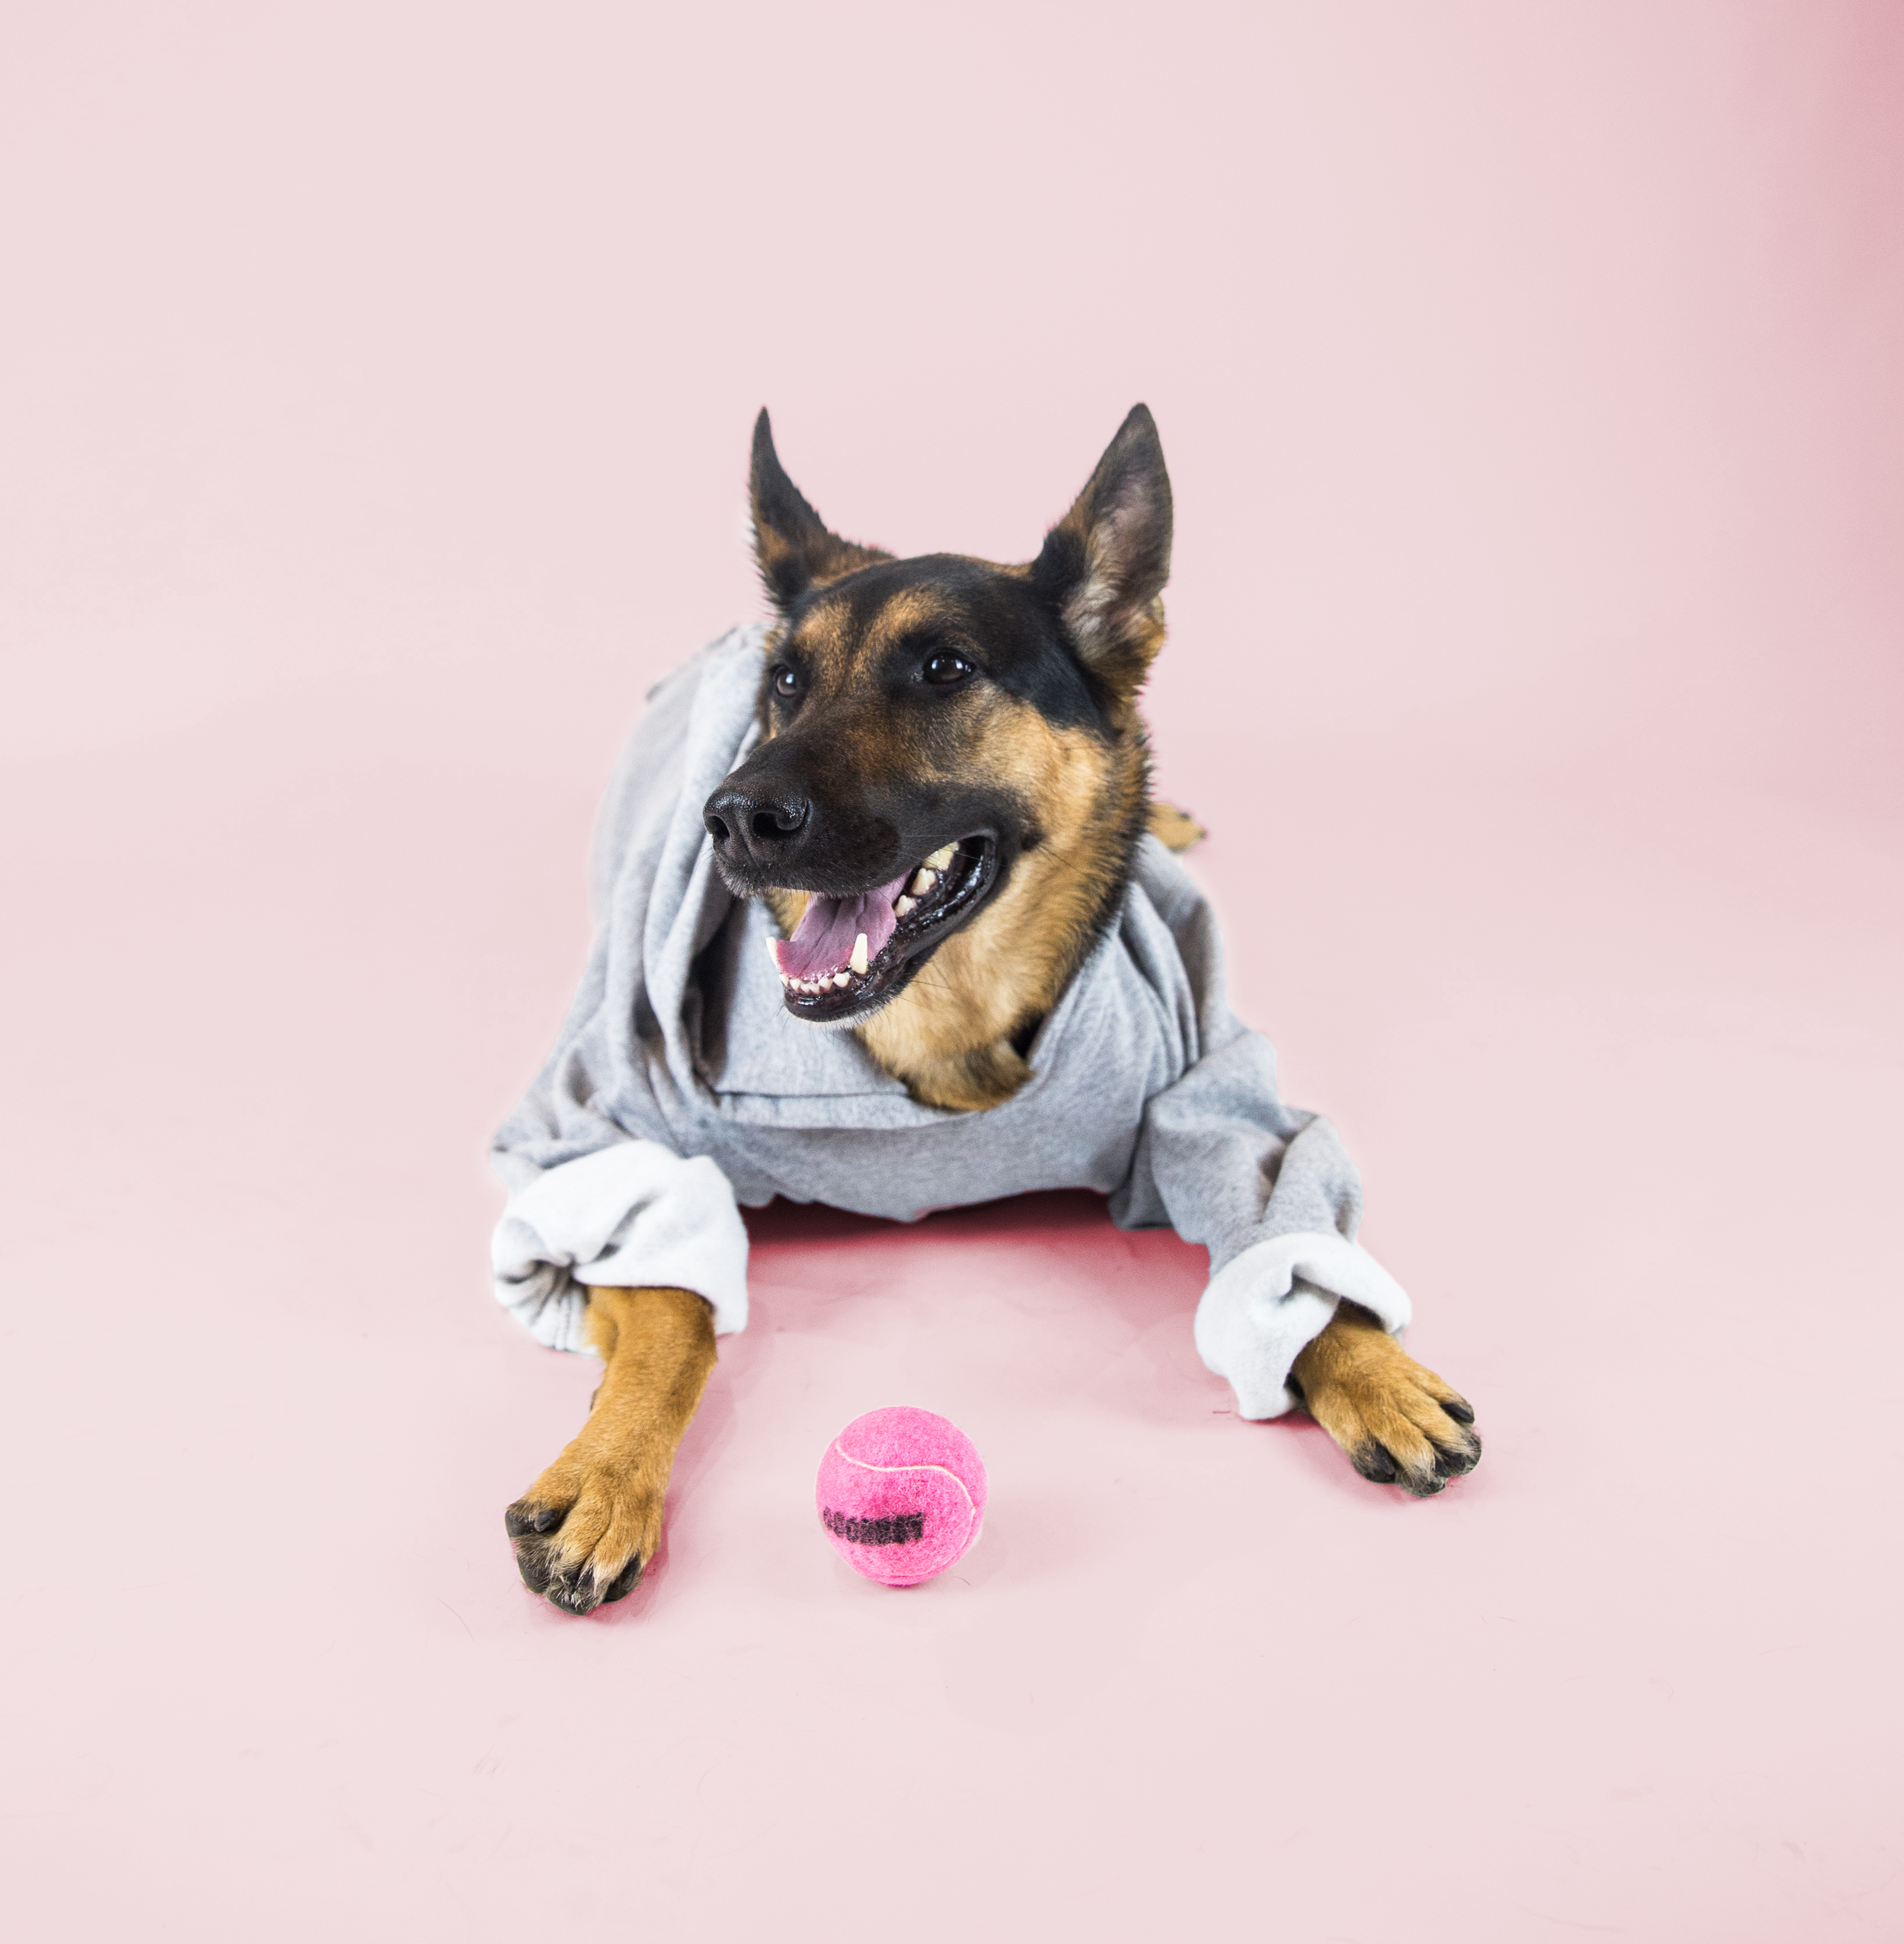 Favourite Goodboy Swag - Maya rocks the Goodboy Grey Hoodie with ease. And as you can see, pink looks great on her. Cue our Goodboy Goodgirl Pink Collar. But her absolutely favourite Goodboy swag would have to be the Goodboy Pink Ball. #Ballislife, afterall.